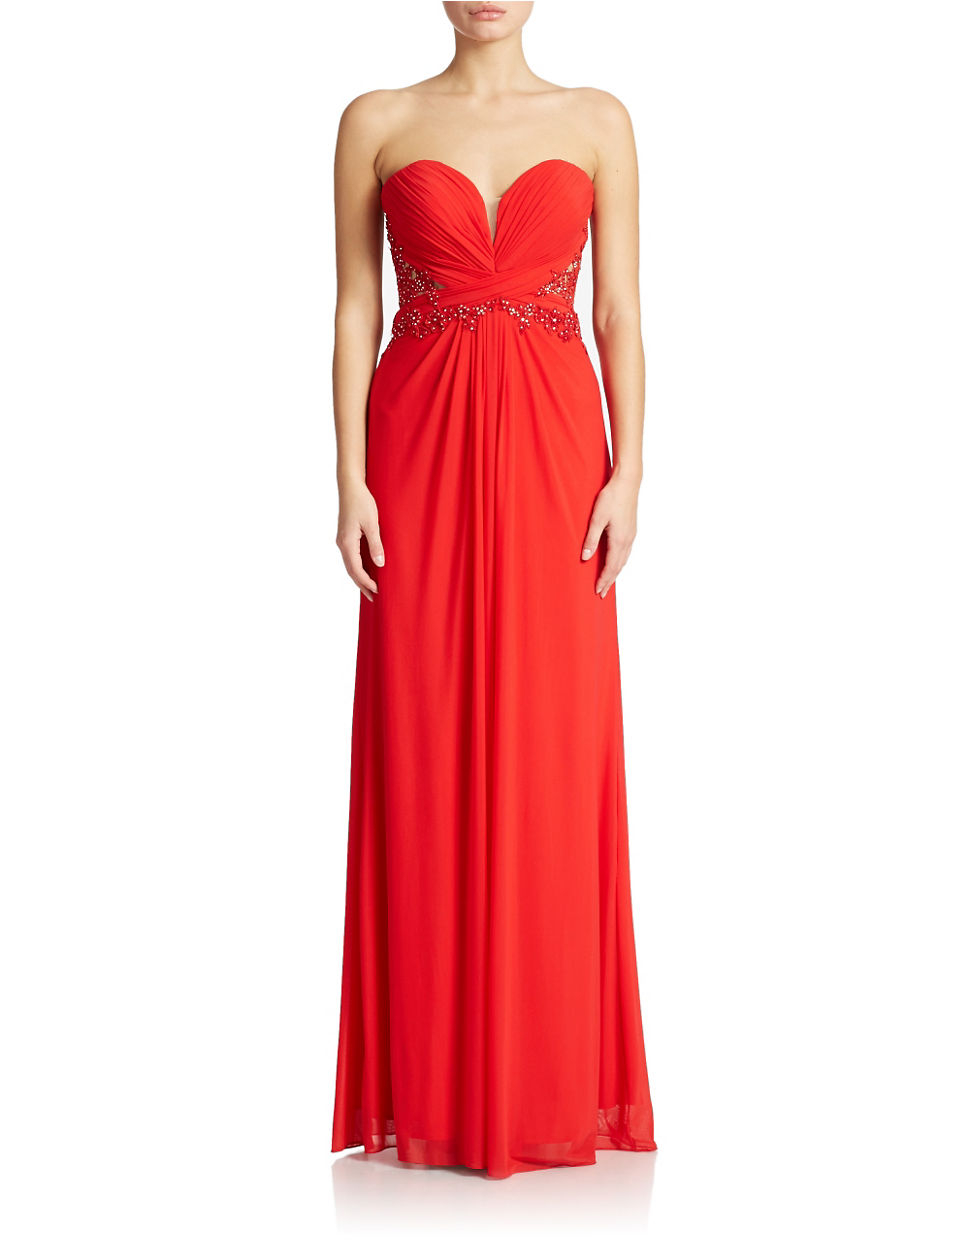 4f66838b28b7 Xscape Red Dress Lord And Taylor